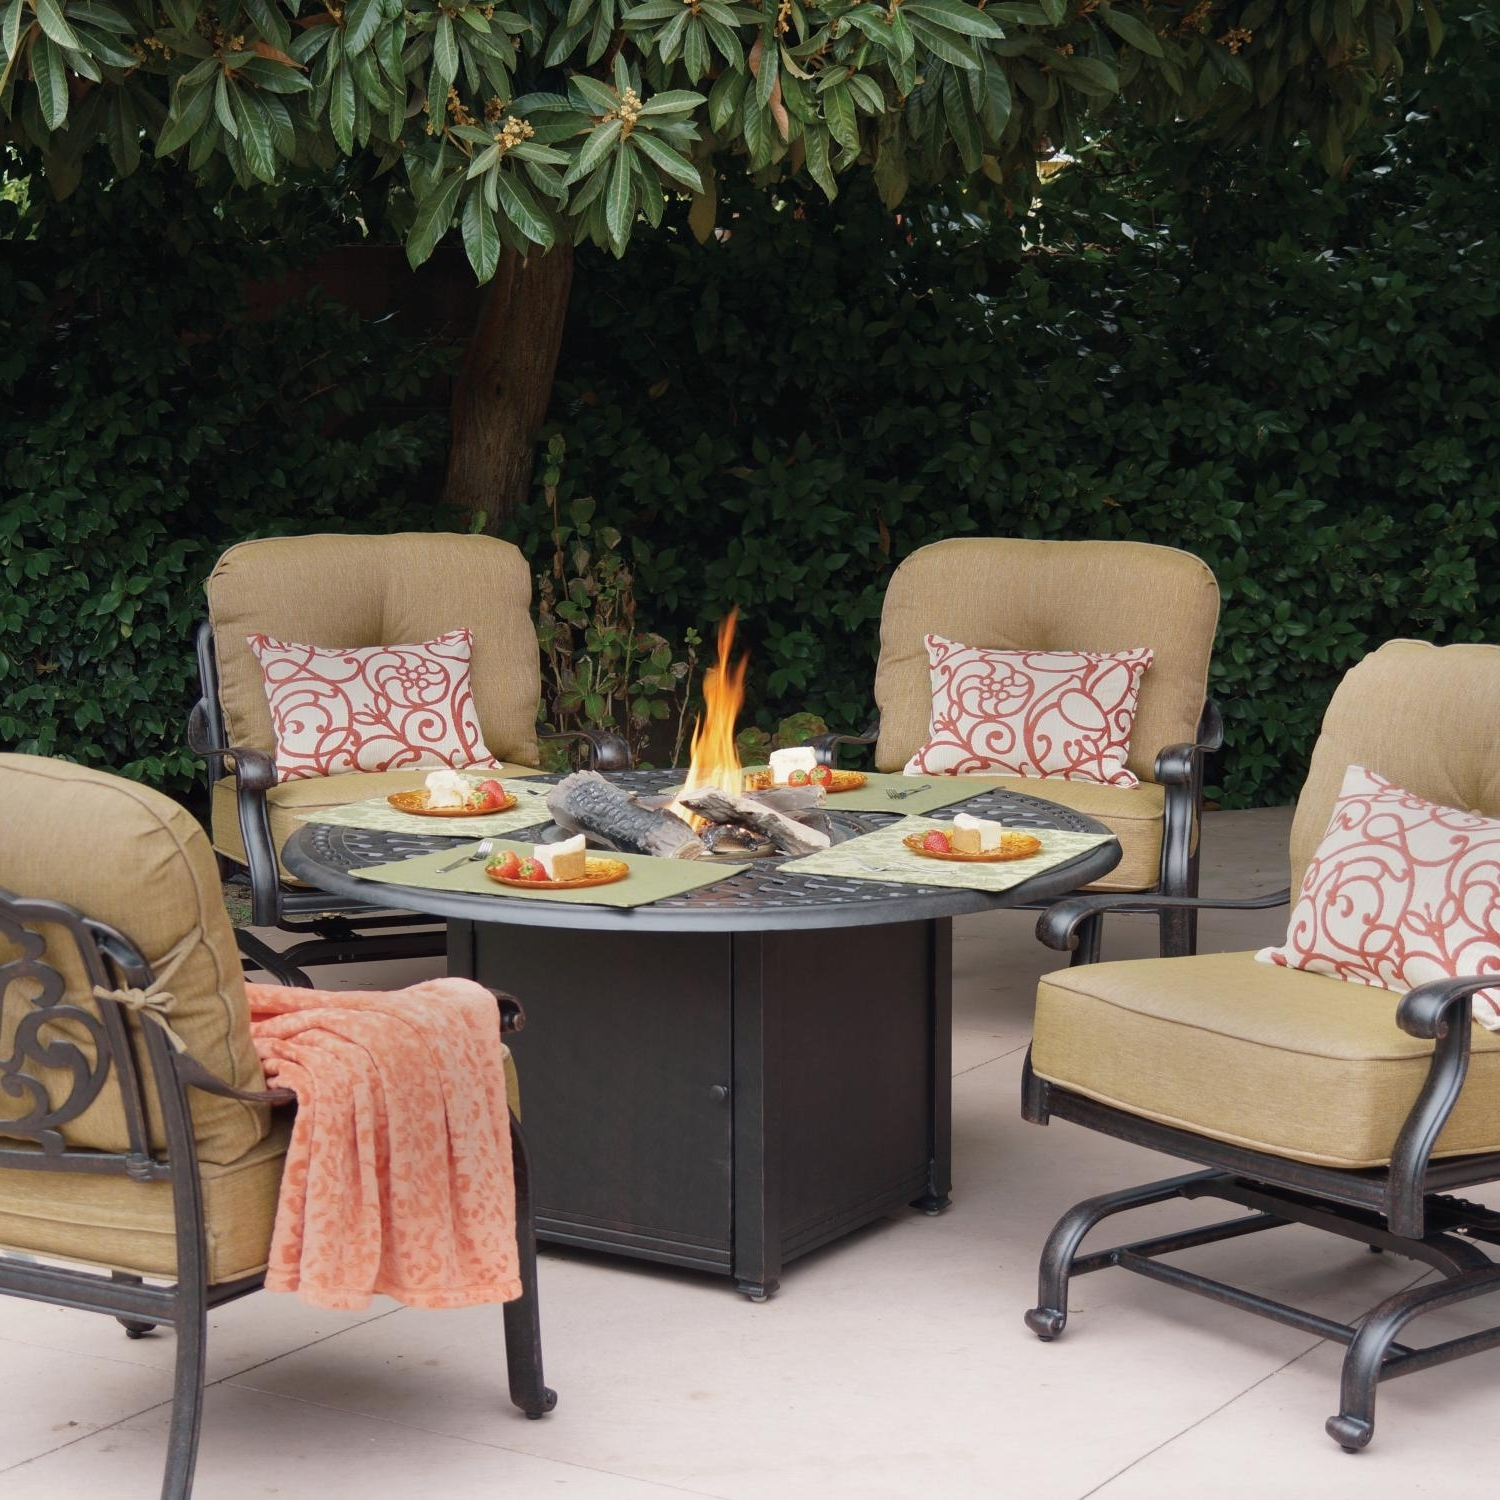 Preferred Patio Conversation Sets With Propane Fire Pit Inside Metal Fire Pit Table Patio Furniture With Propane Fire Pit Table (View 11 of 15)